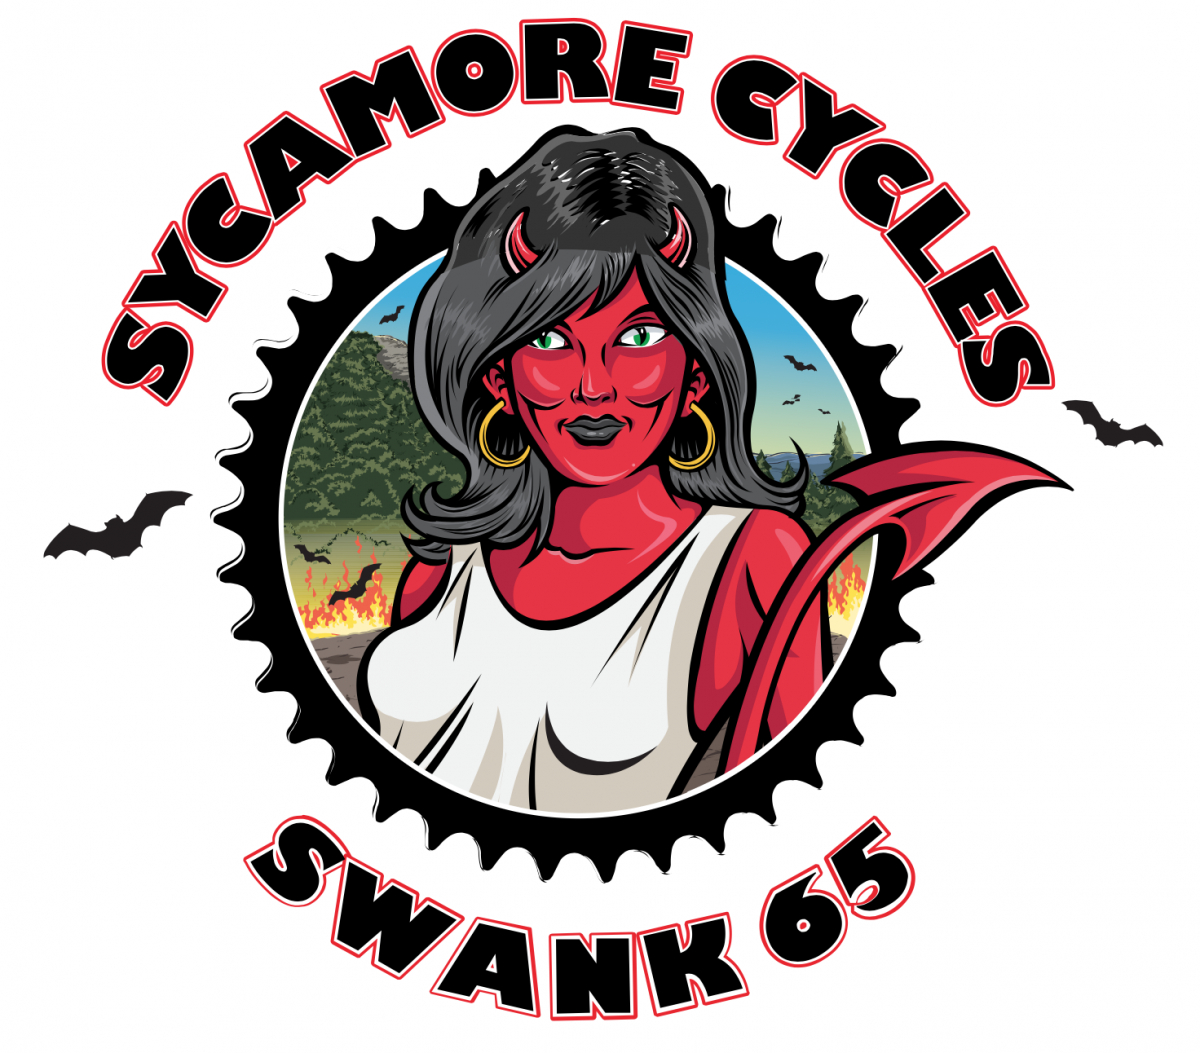 Sycamore Cycles Swank 65